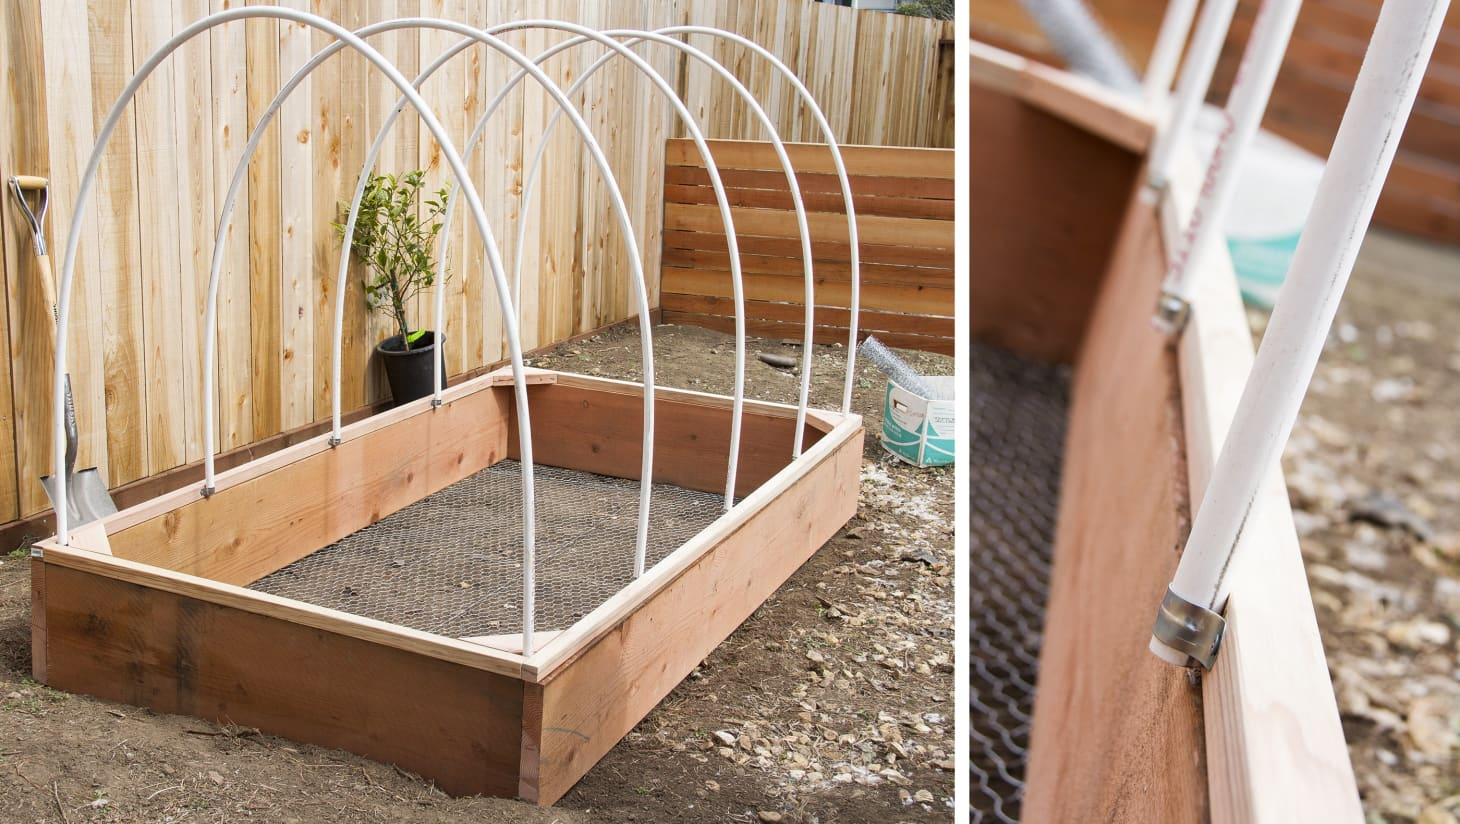 DIY Covered Greenhouse Garden: A Removable Cover Solution to